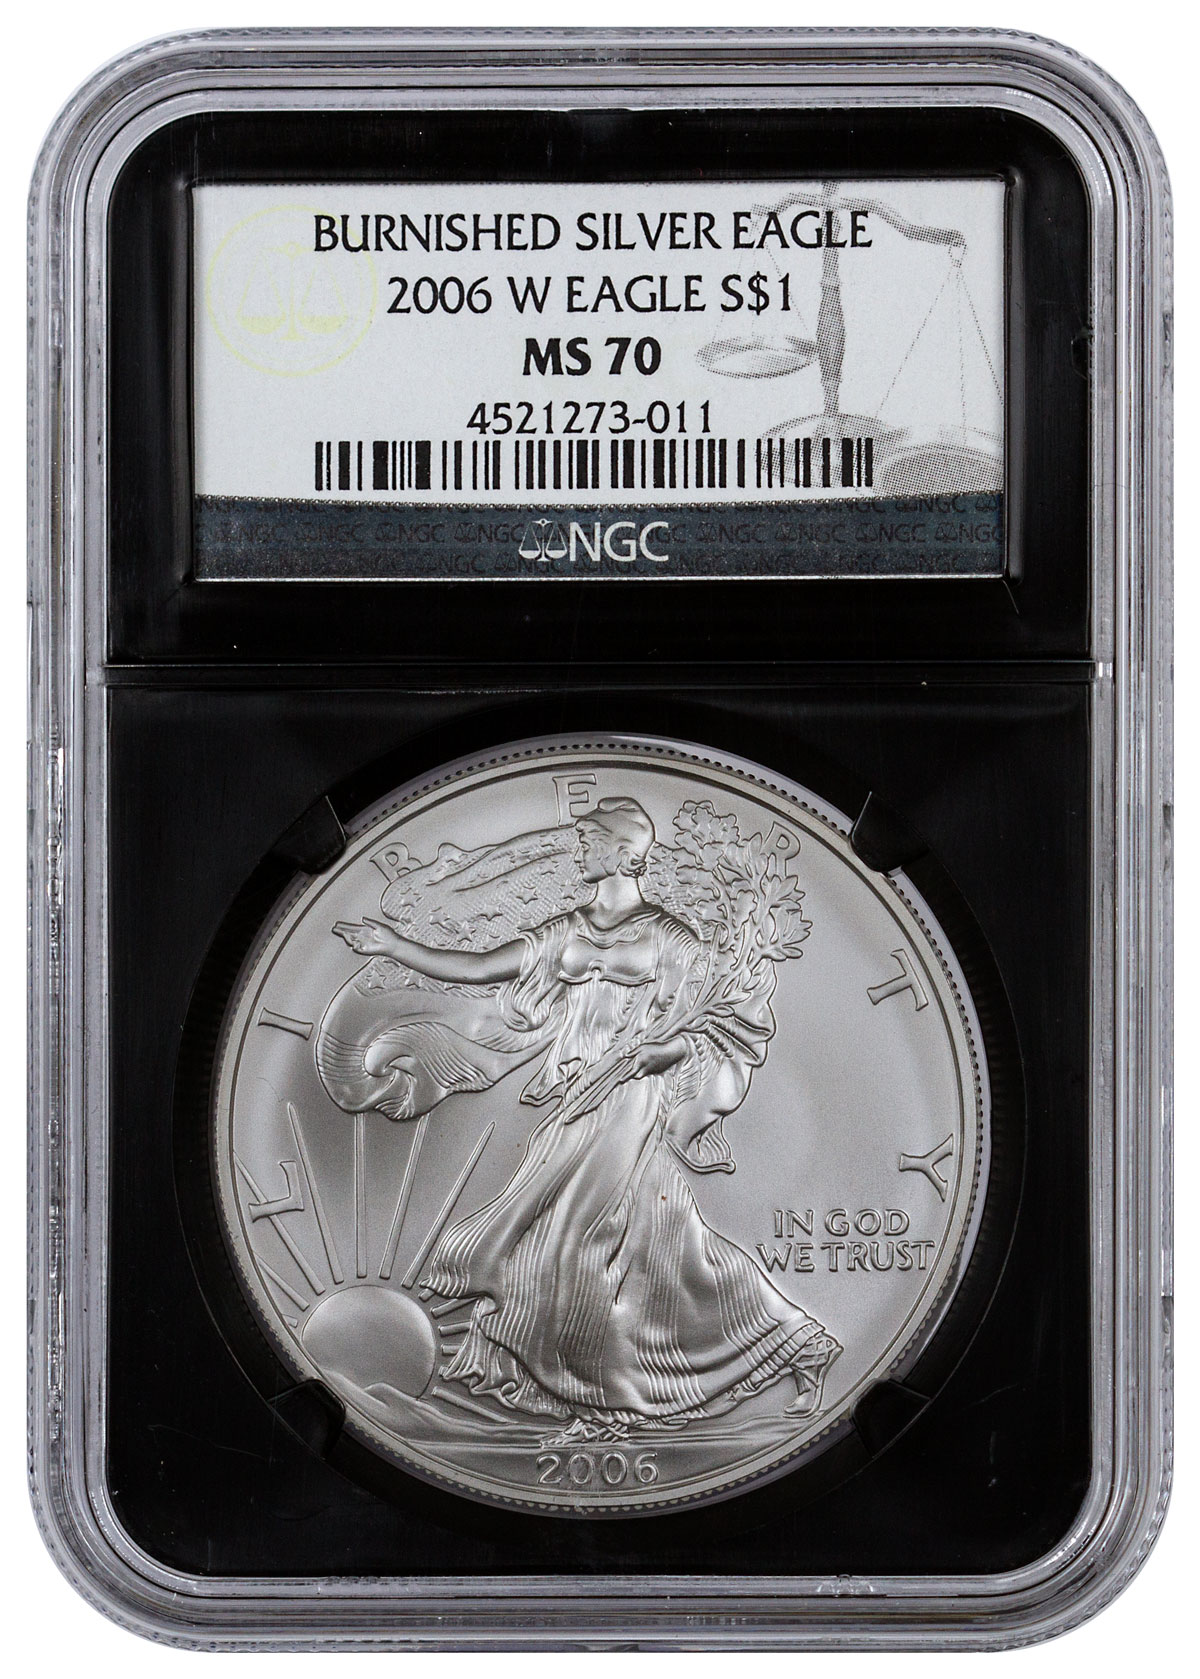 2006 W Burnished Silver Eagle Ngc Ms70 Black Core Holder